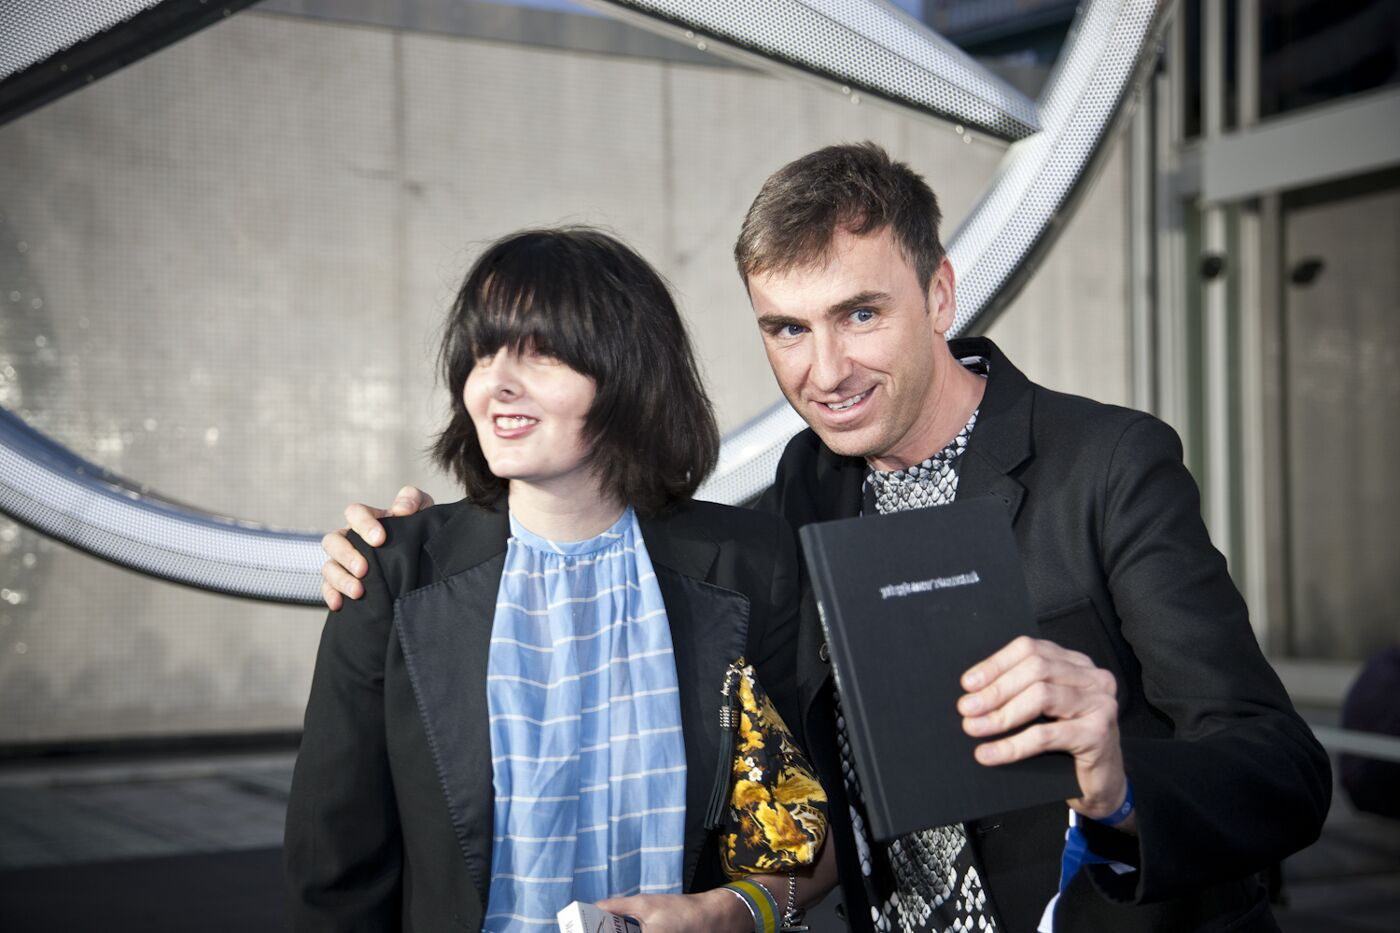 Jo-Ann Furniss & Raf Simons